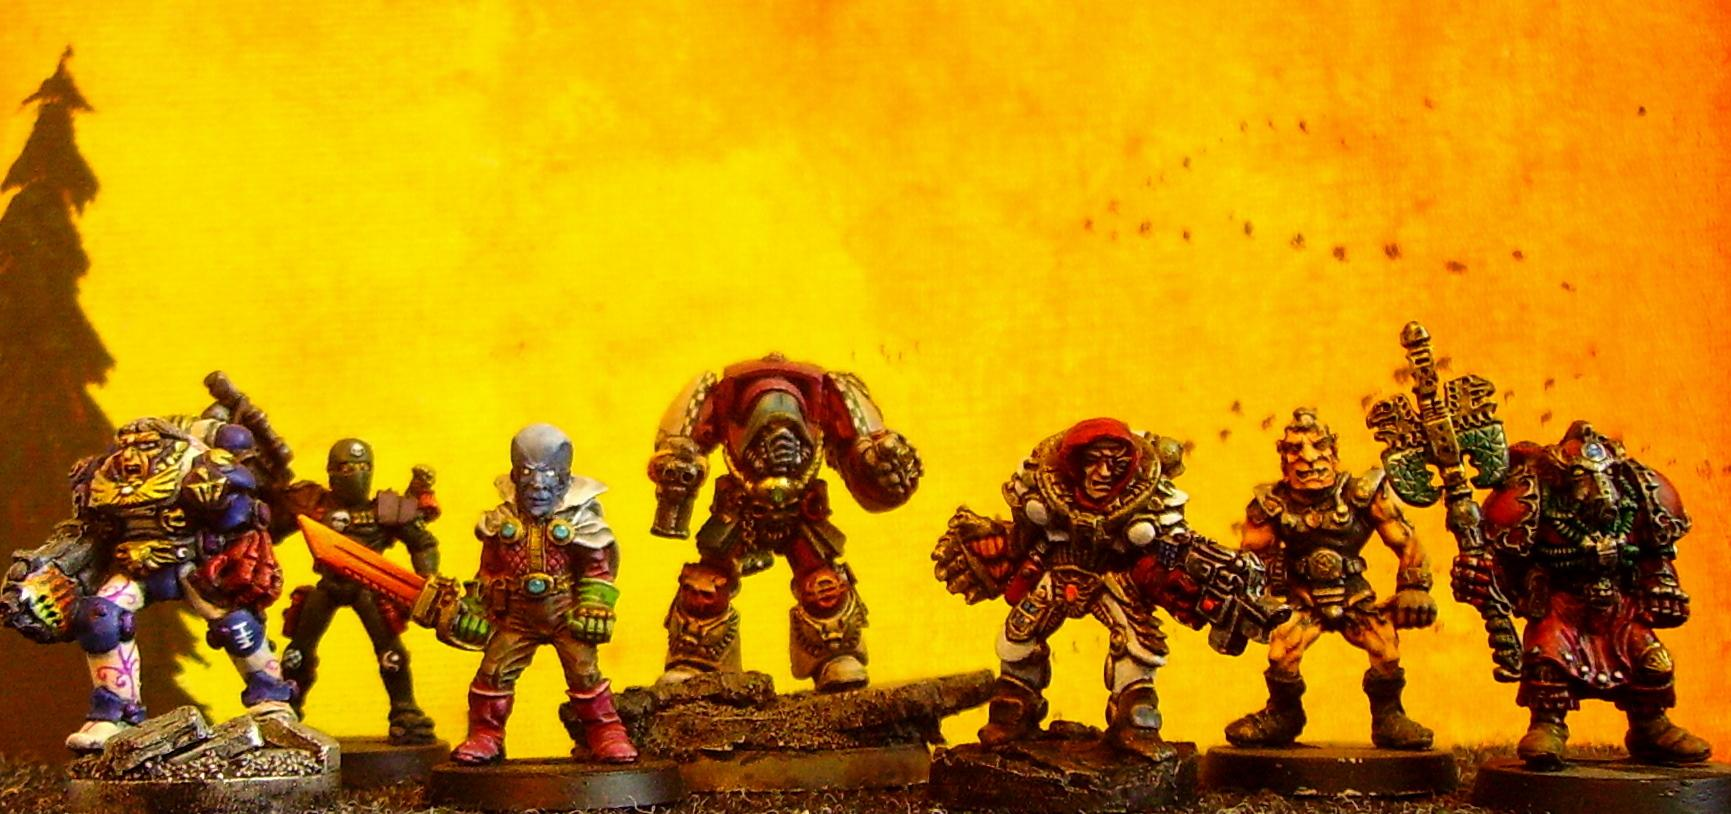 Imperial, Inquisitor, Retinue, Rogue Trader